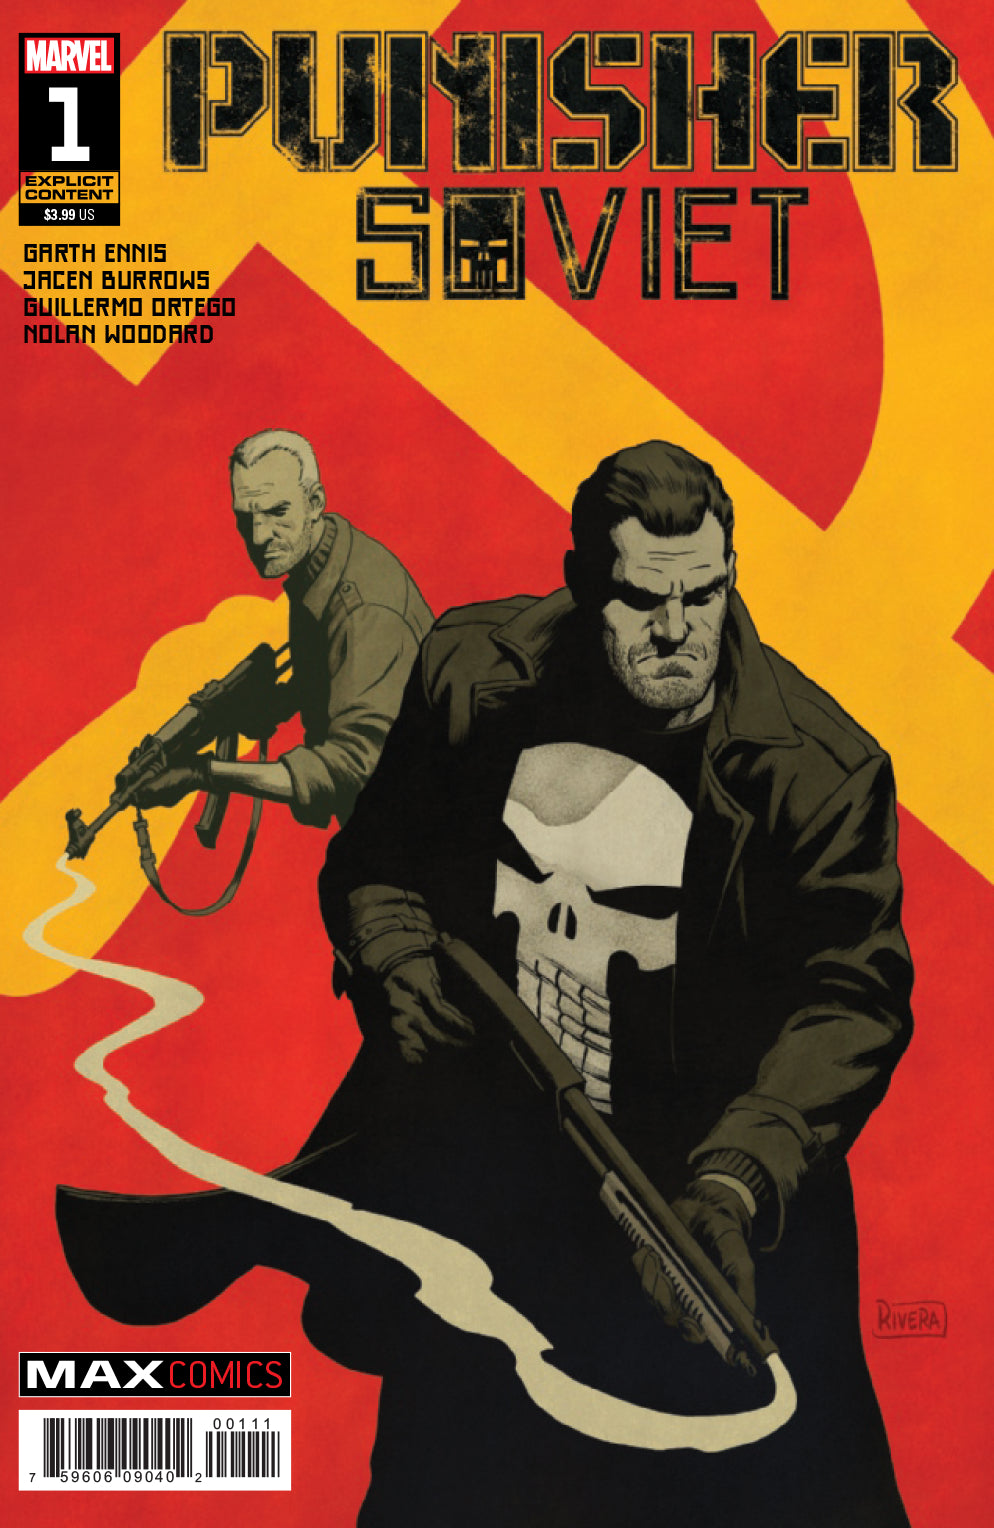 PUNISHER SOVIET #1 (OF 6) (MR) - 2 Geeks Comics